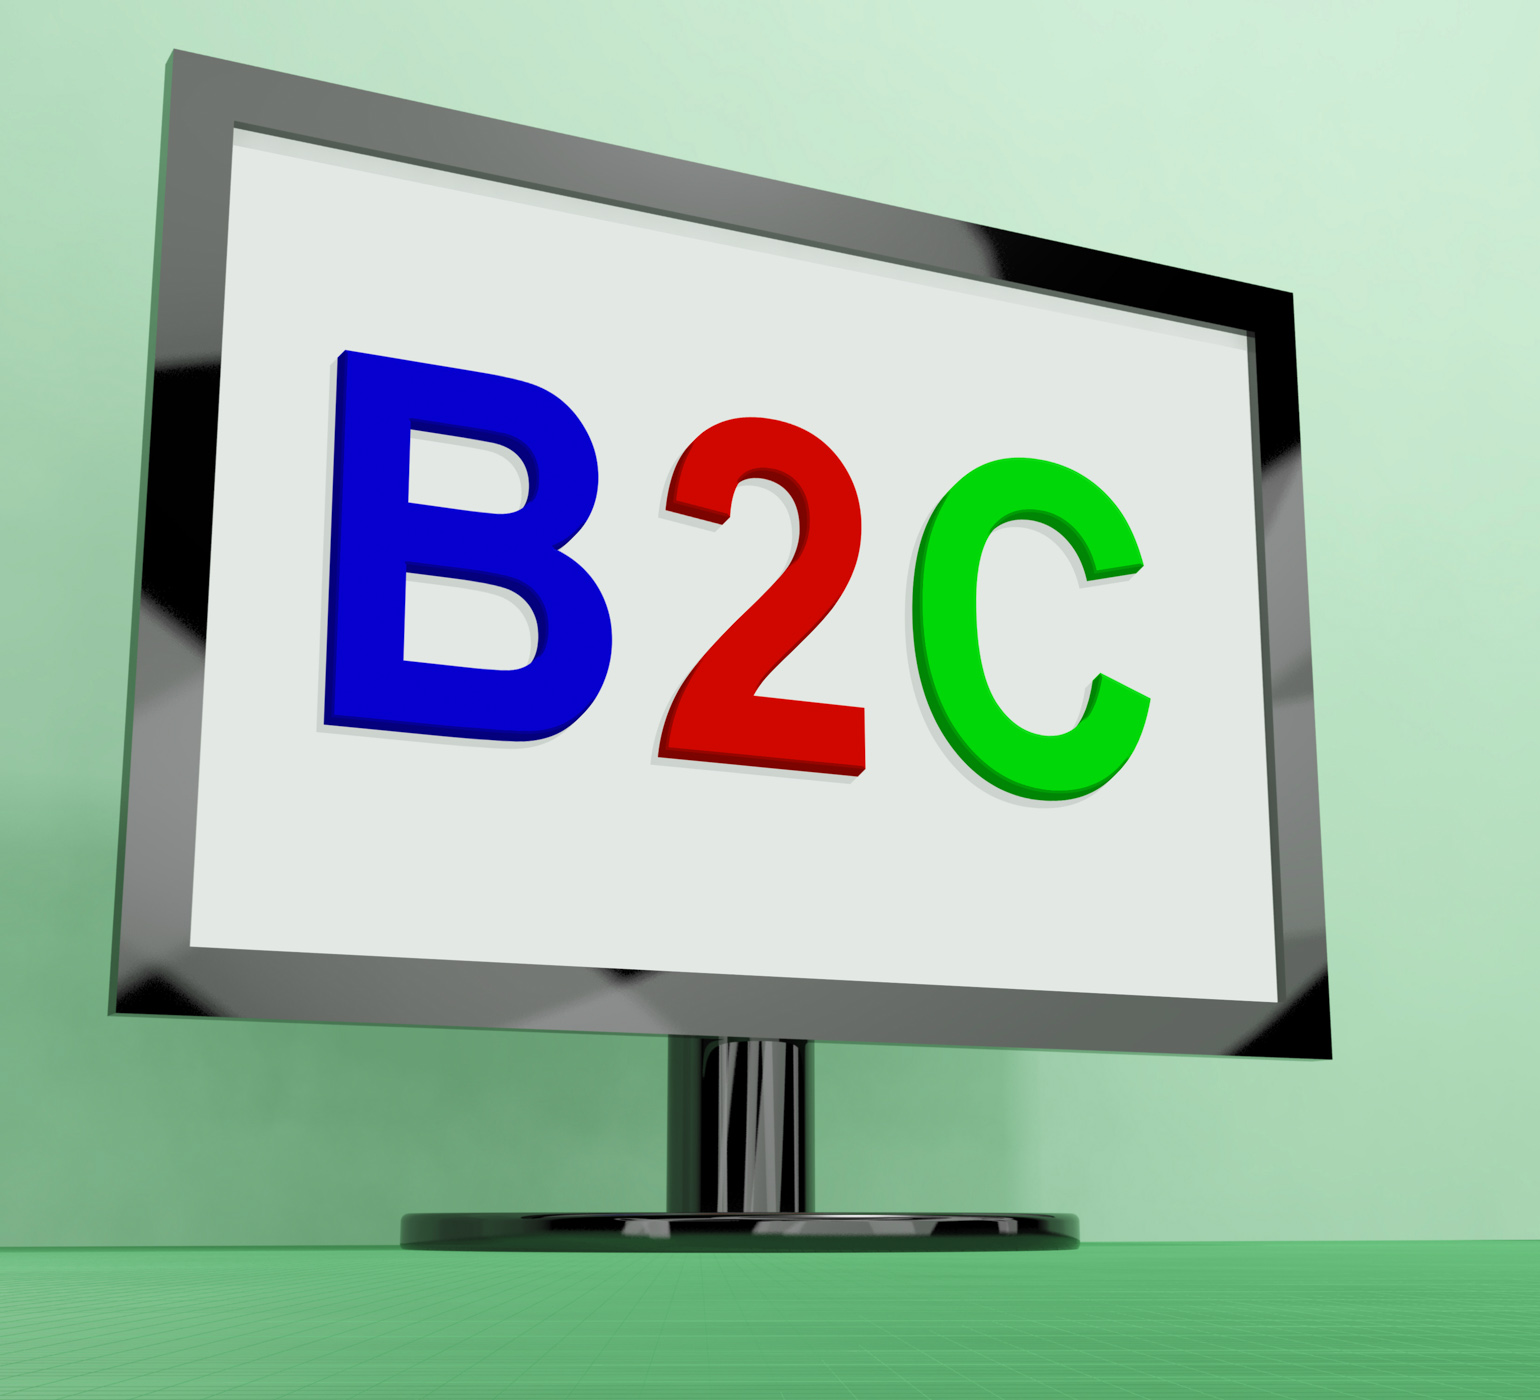 B2c On Monitor Shows Business To Customer Or Consumer, Ecommerce, E-commerce, Customer, Online, HQ Photo